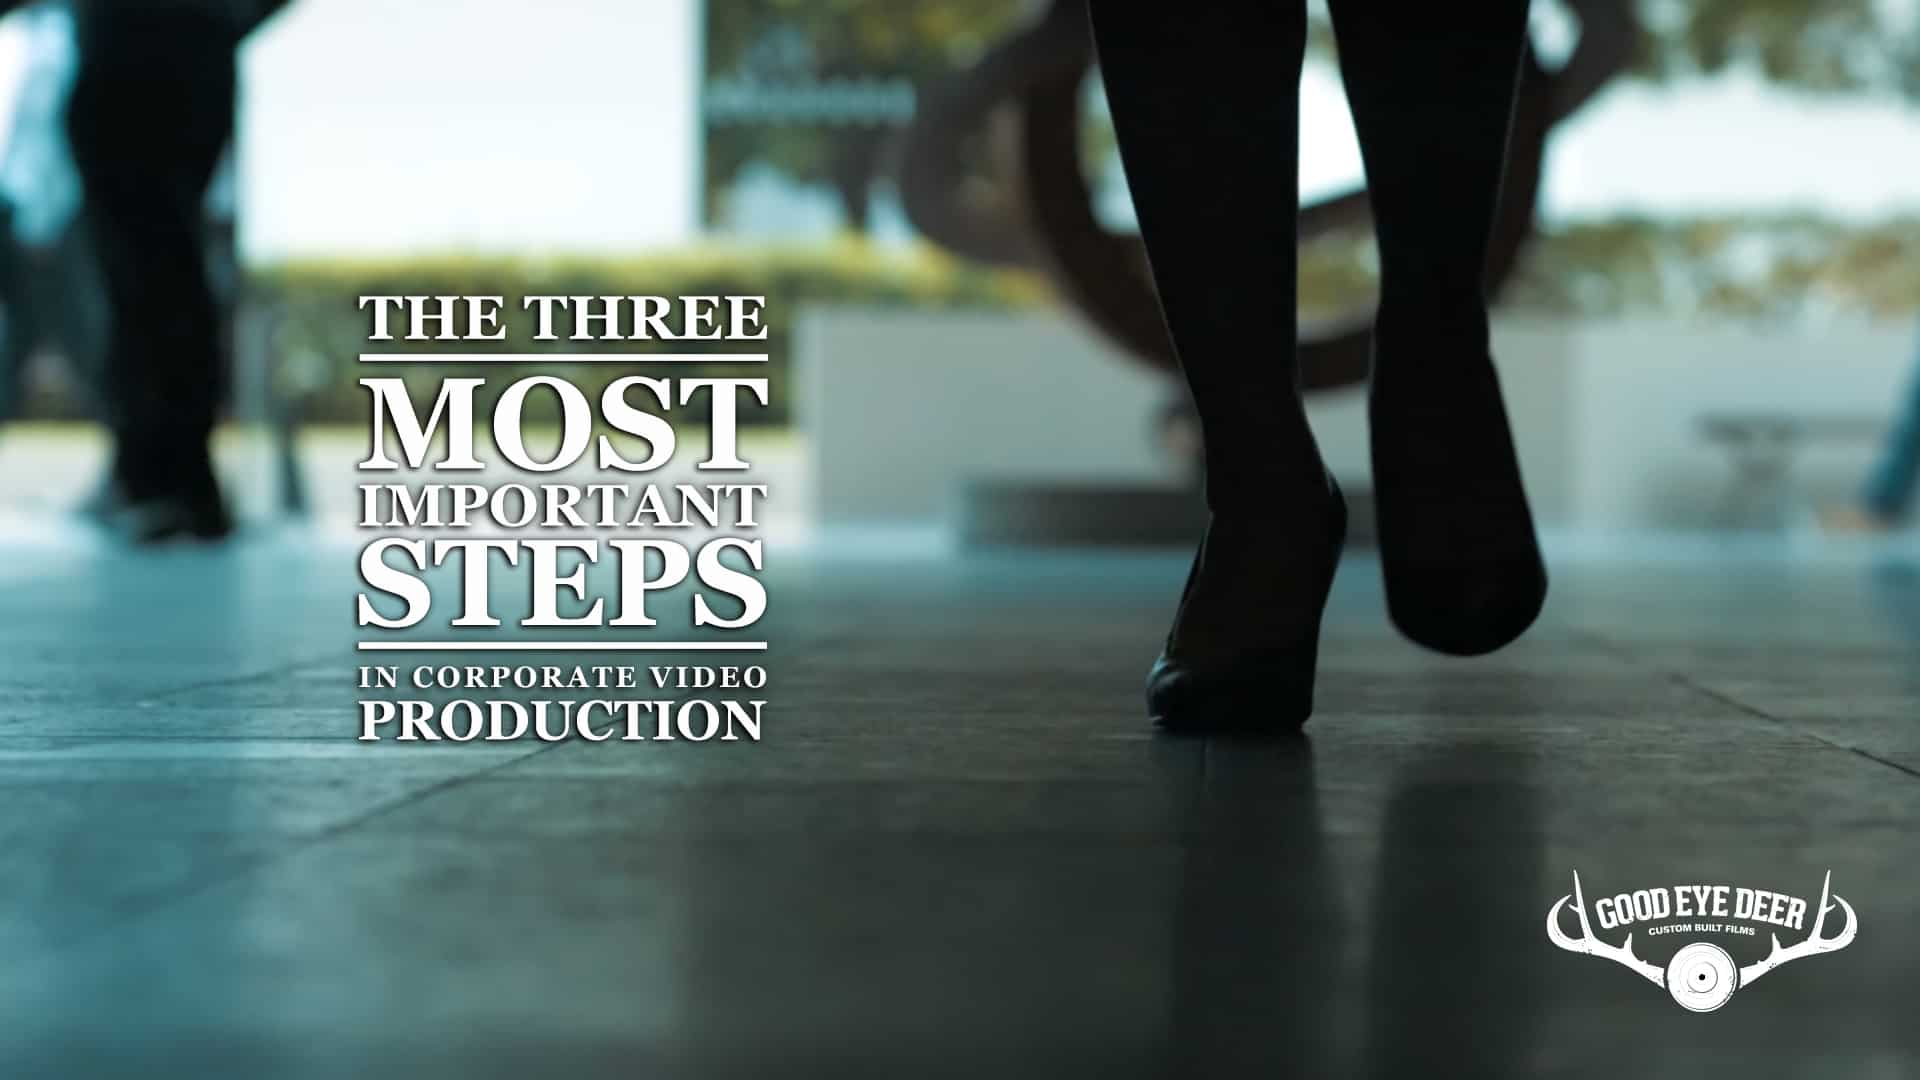 Three most important steps in corporate video production